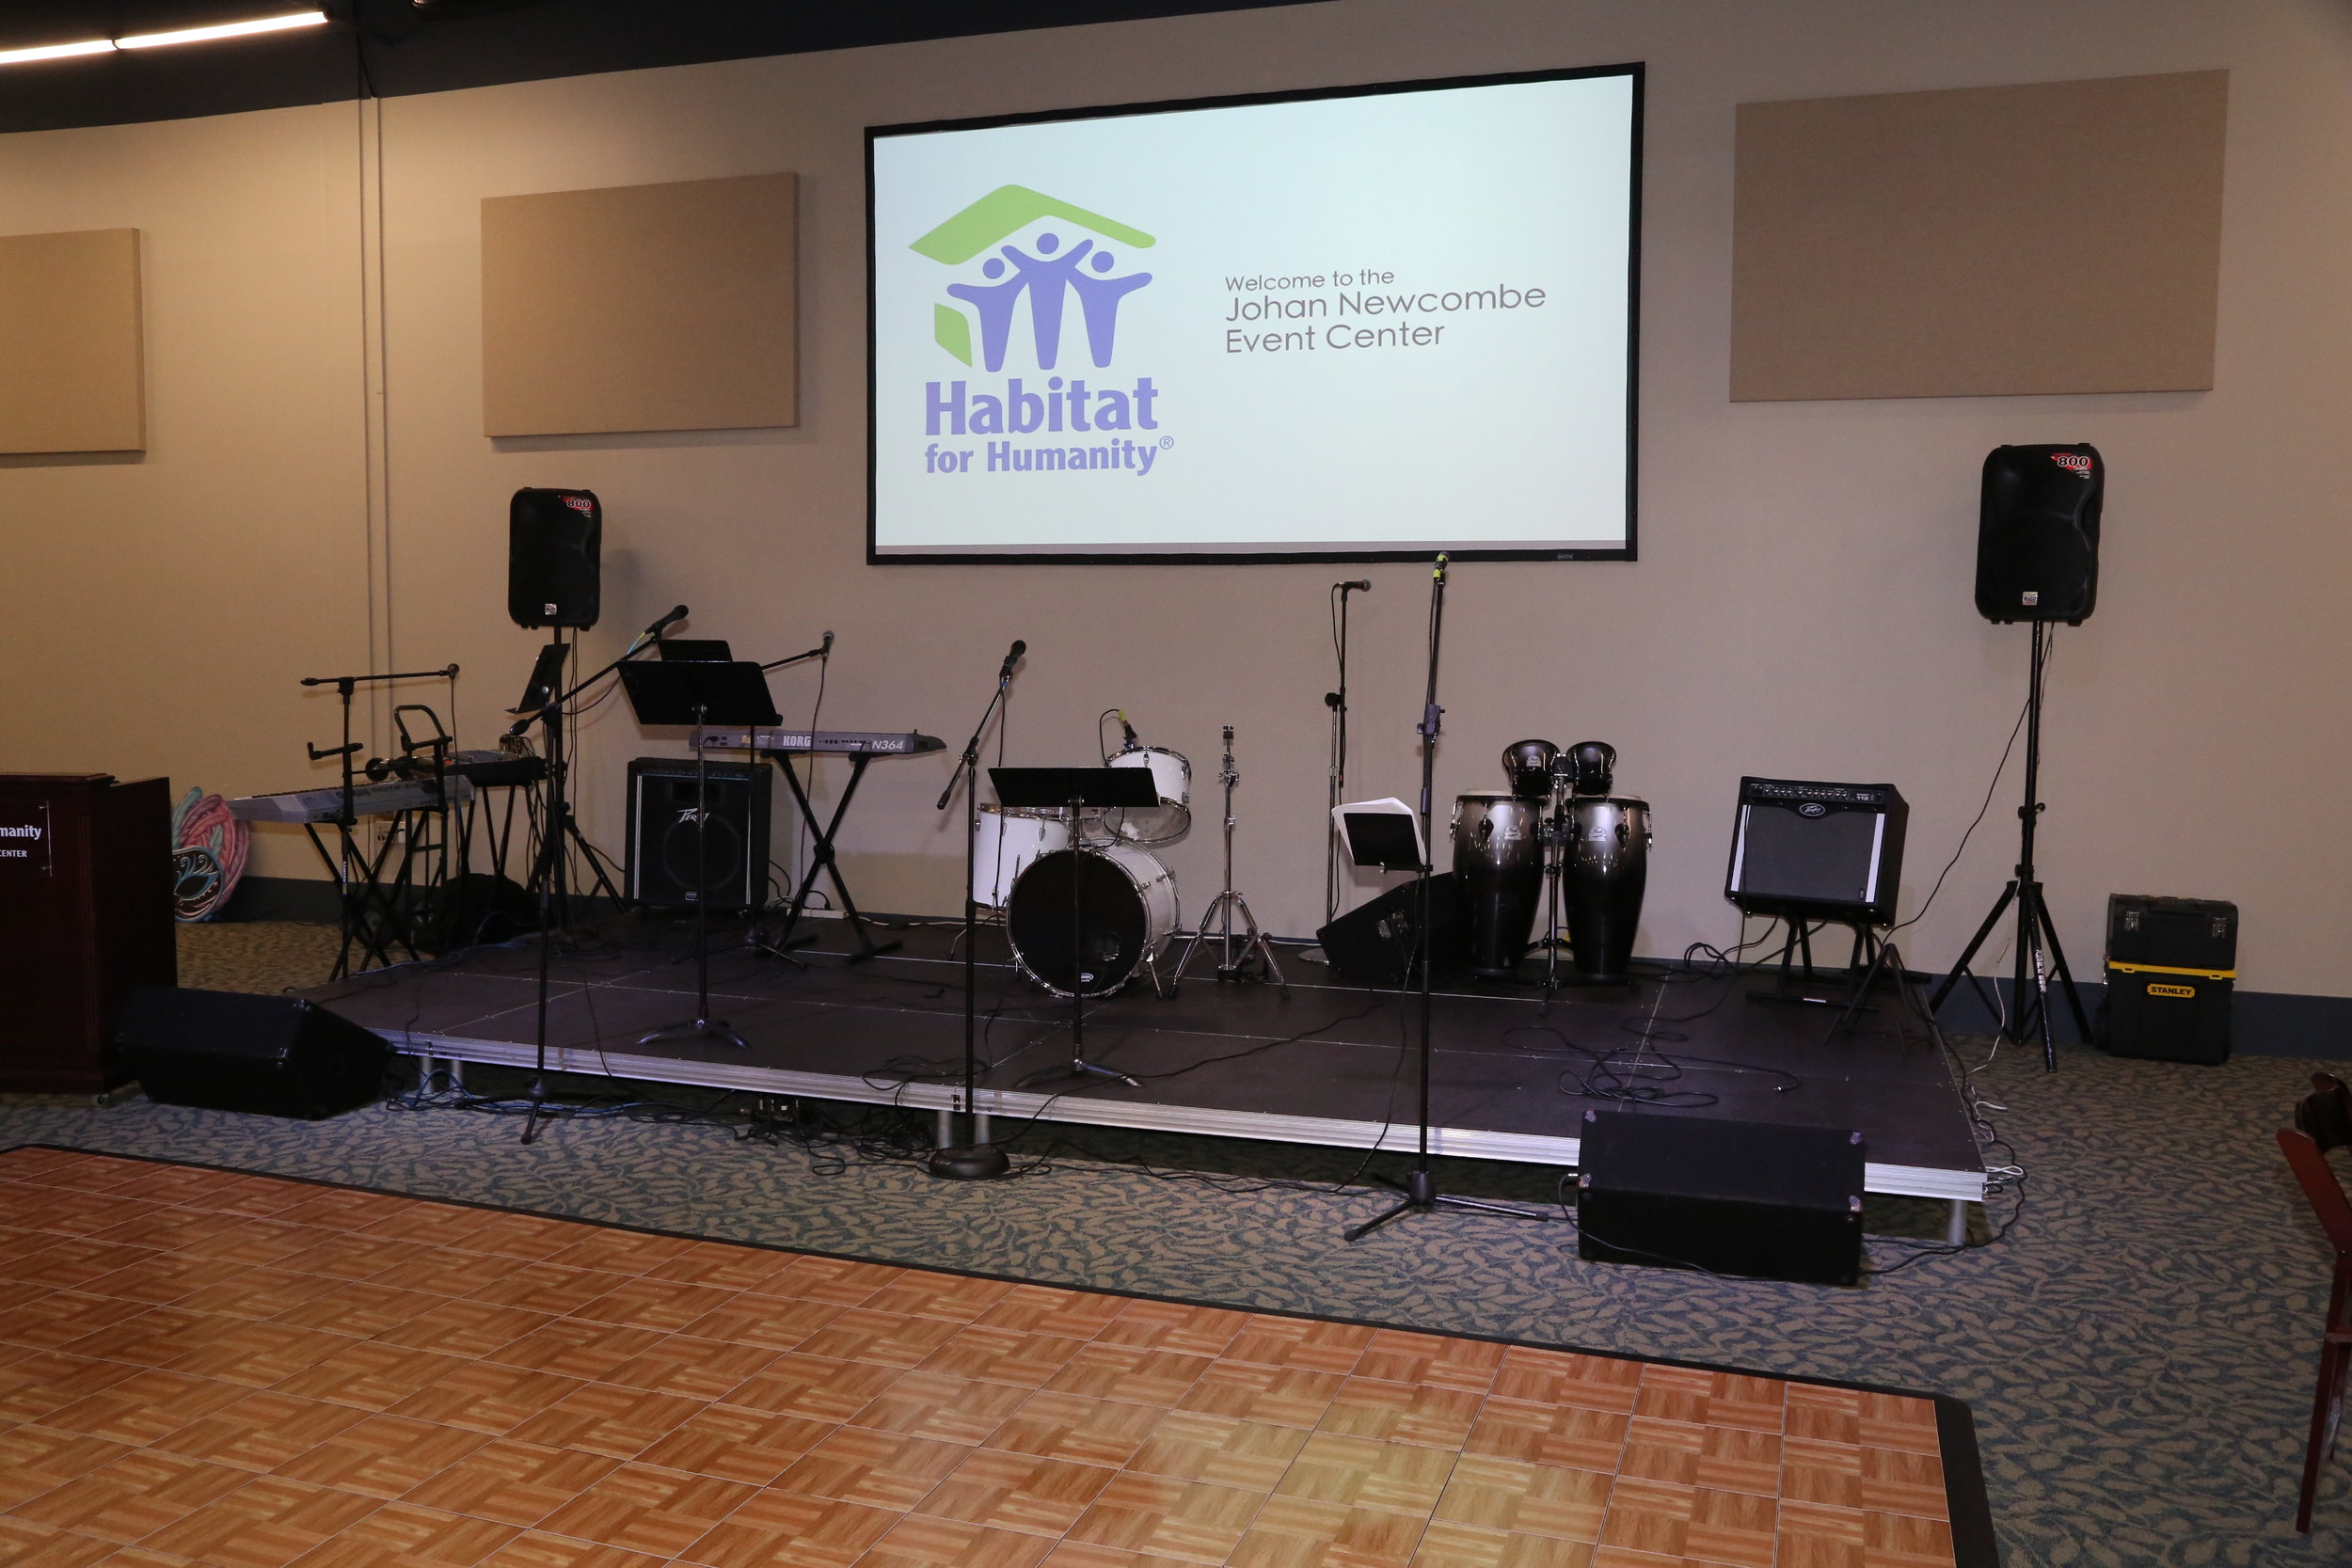 BAND SET UP AND 20 X 20 DANCE FLOOR Resize.jpg